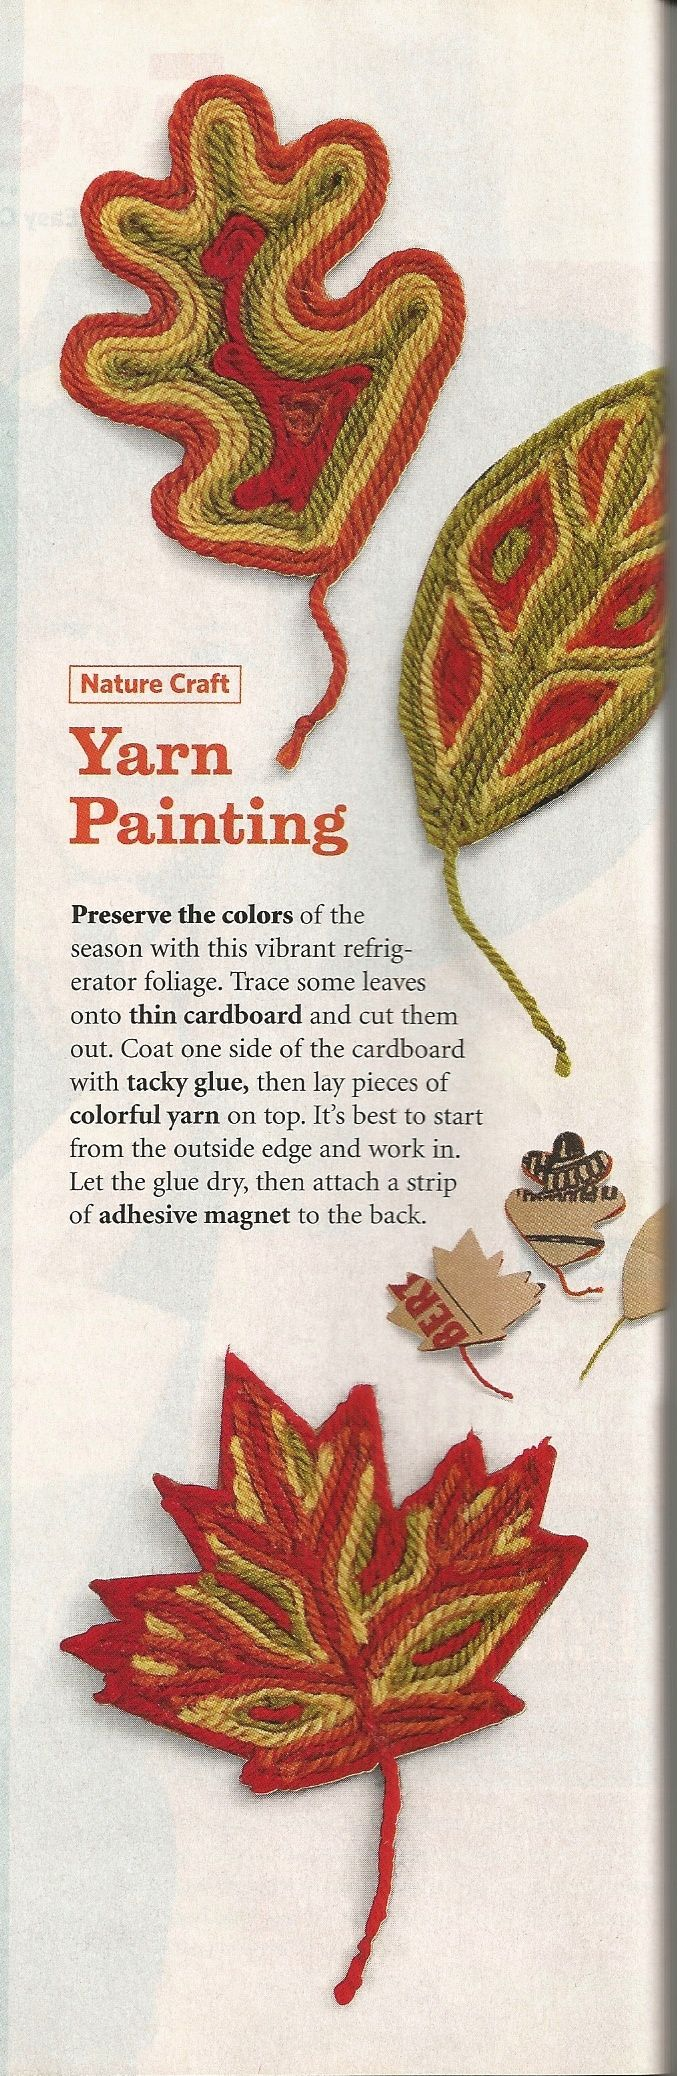 Yarn Painting from Family Fun Magazine October 2007 issue